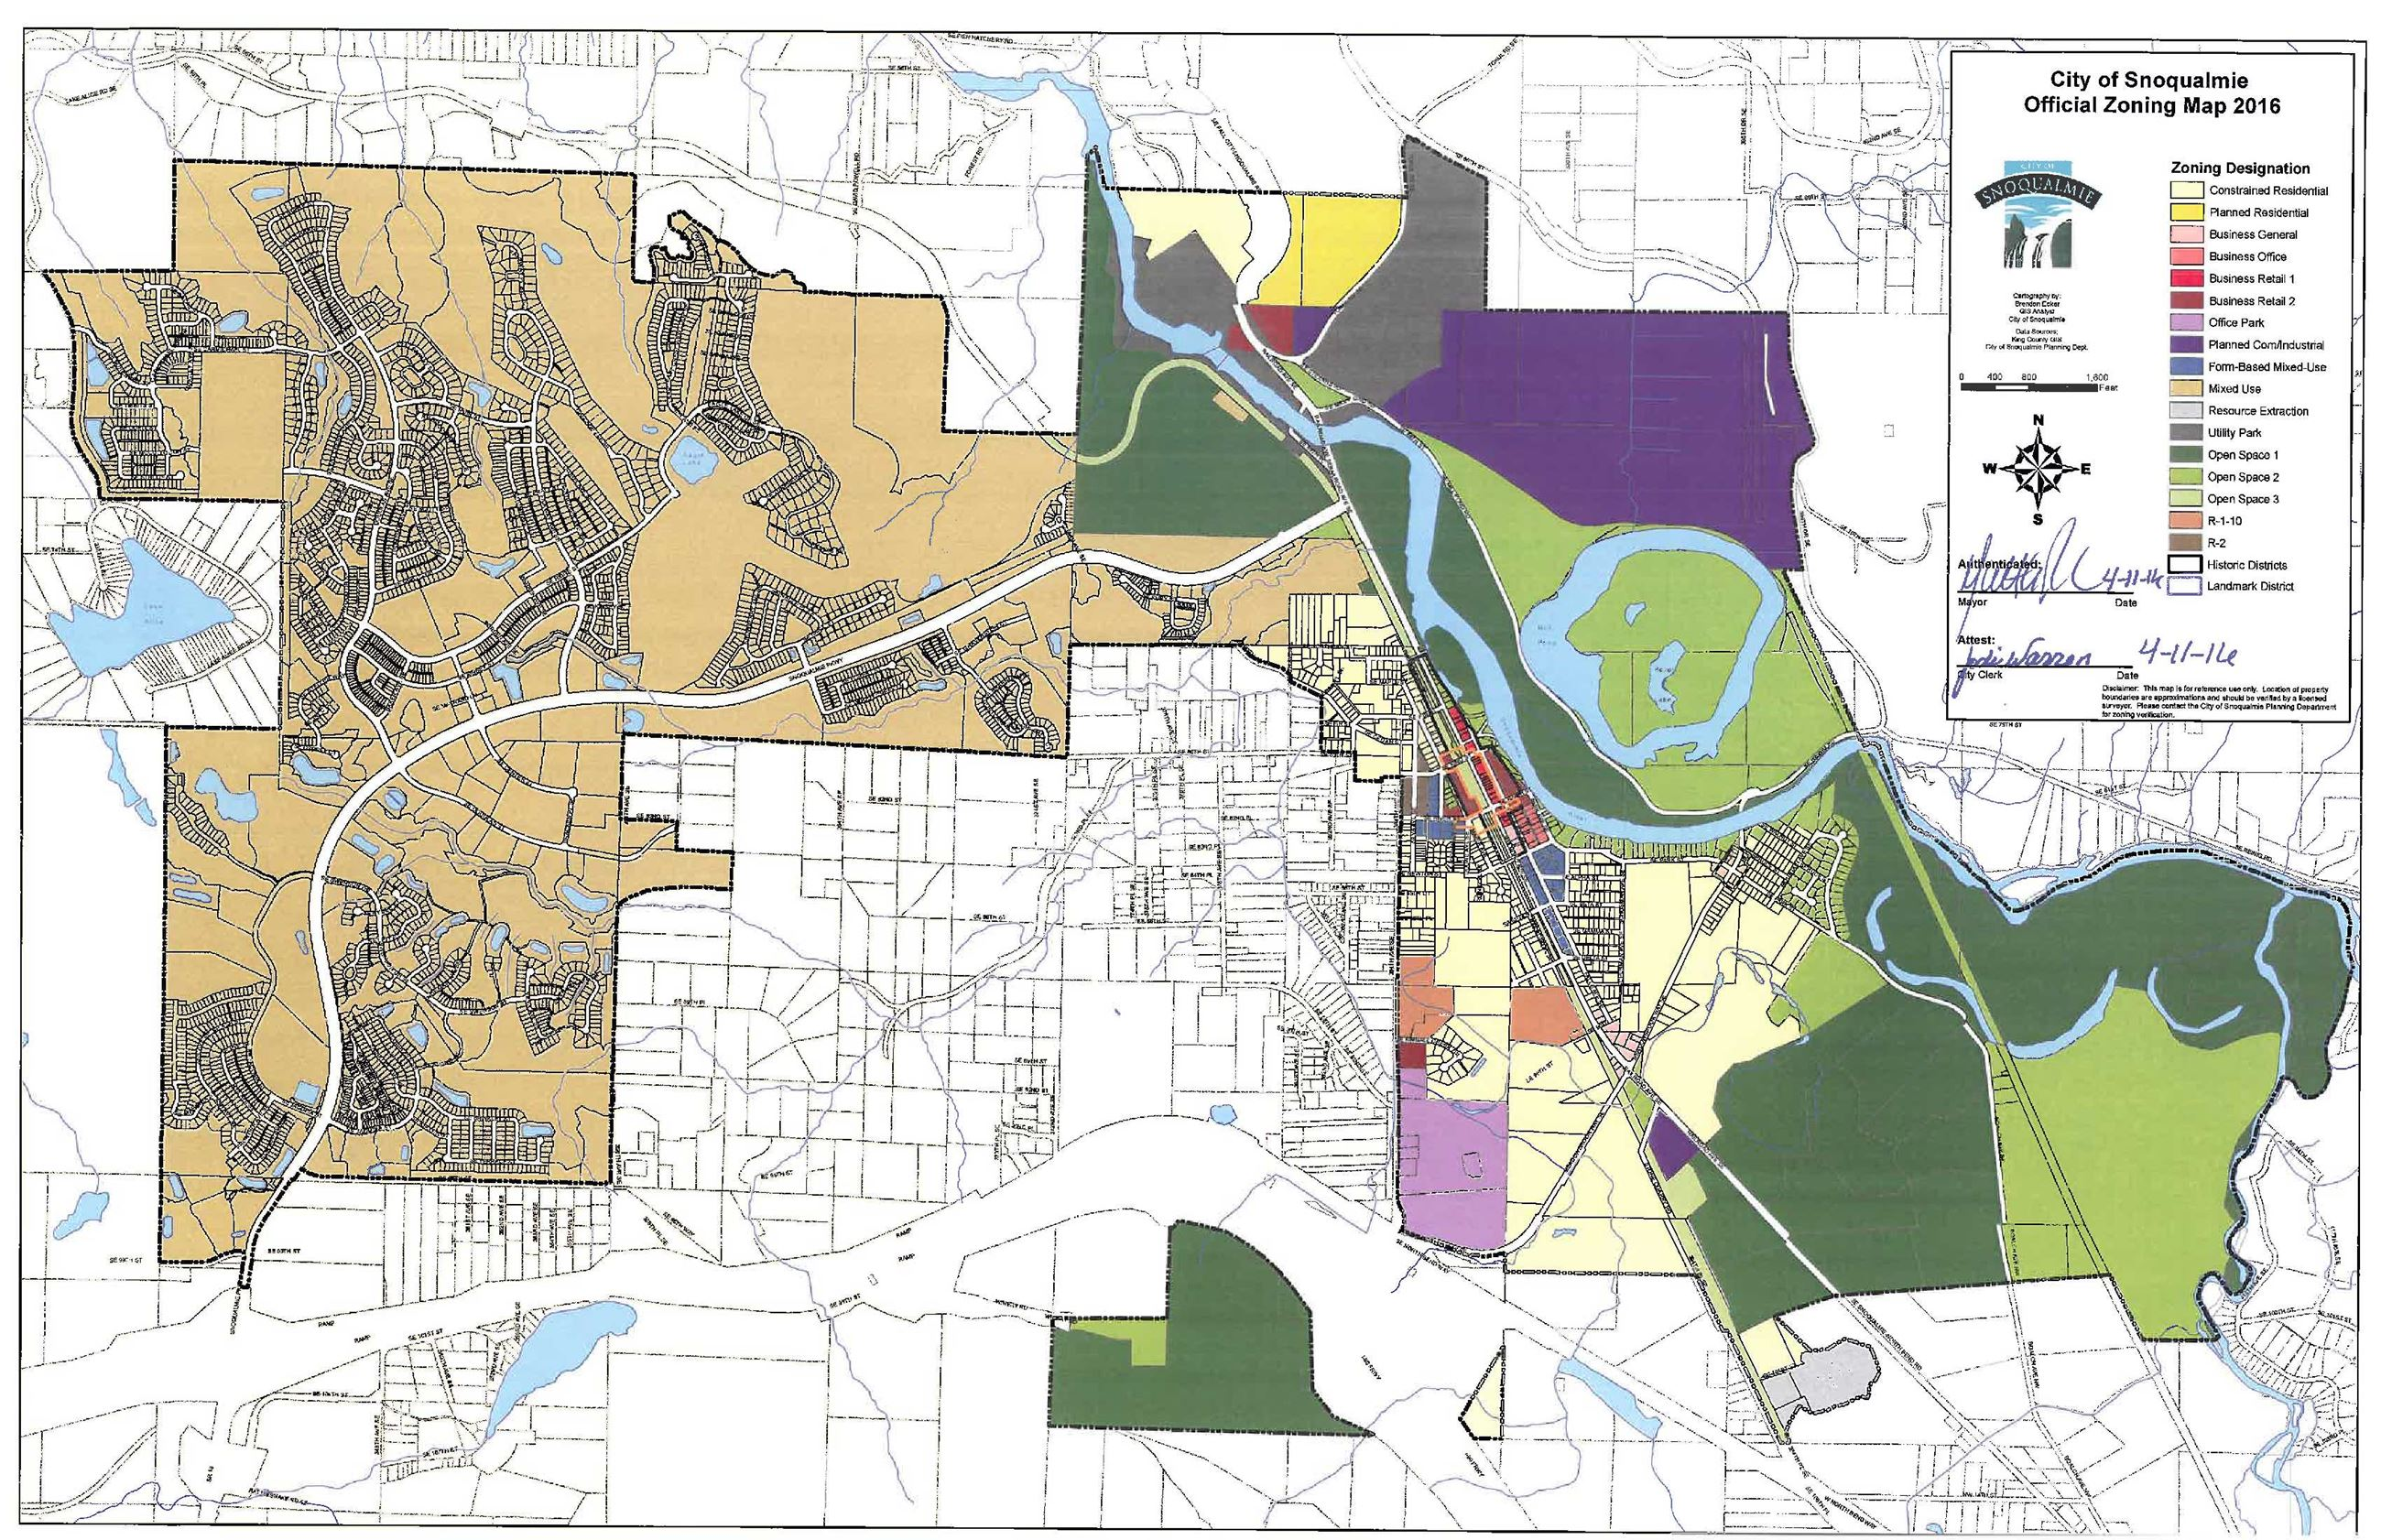 This is the official zoning map of the City of Snoqualmie.